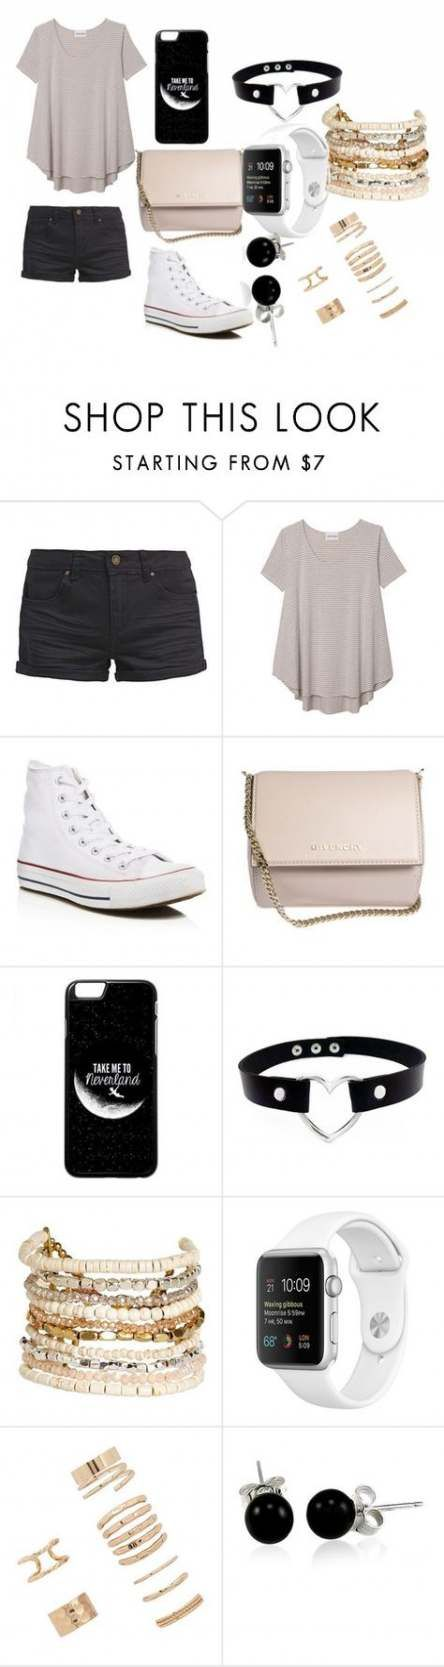 24 ideas for fashion outfits going out polyvore